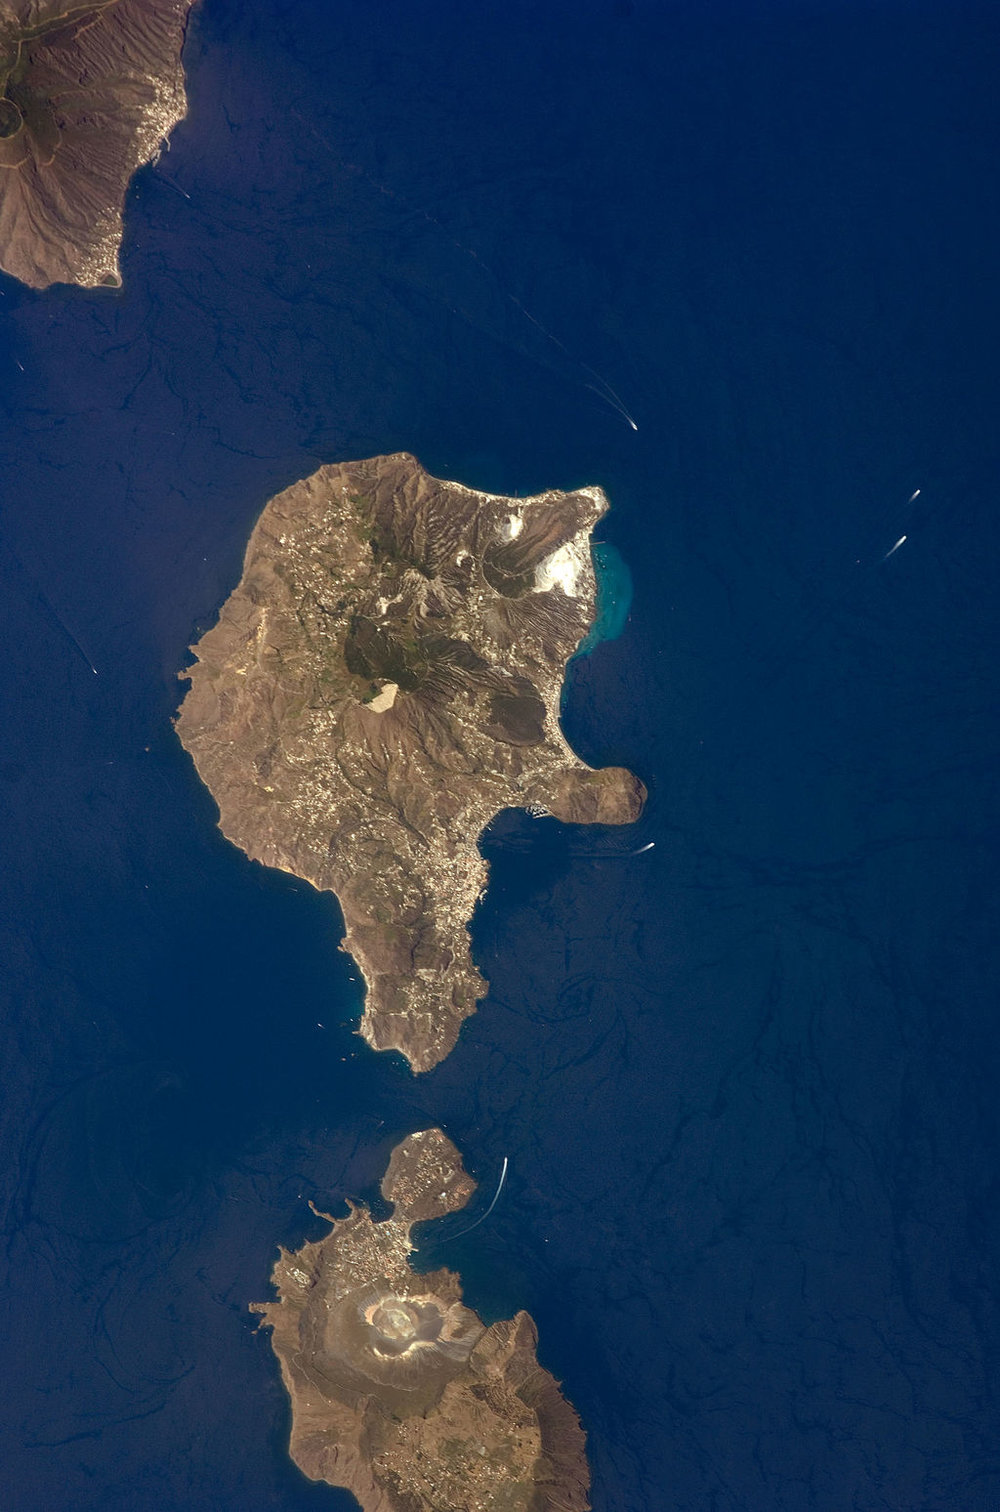 1024px-Aeolian_Islands_Lipari.jpg